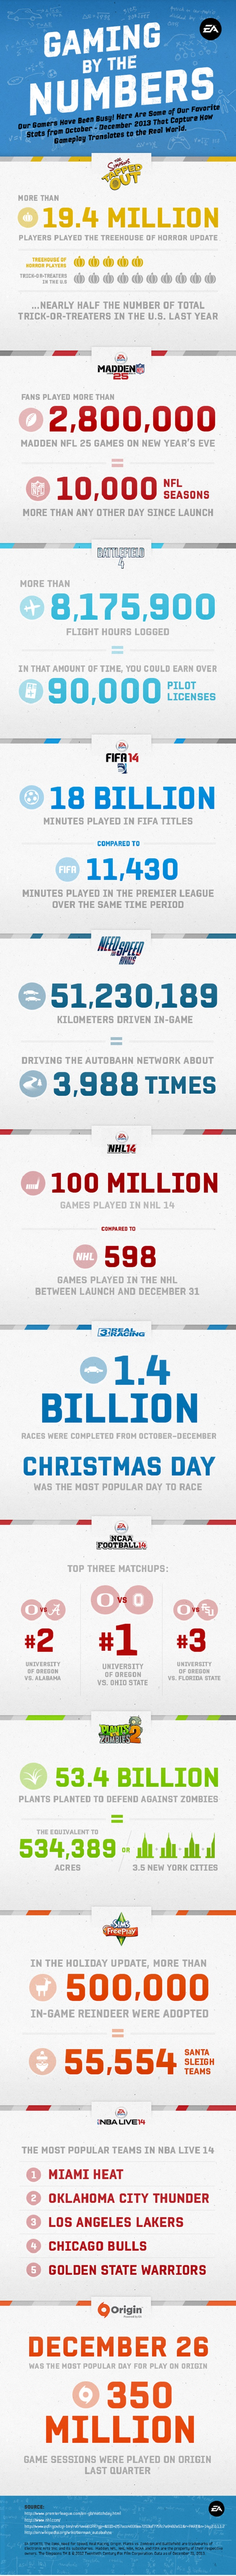 EA by the numbers for FYQ3 2013